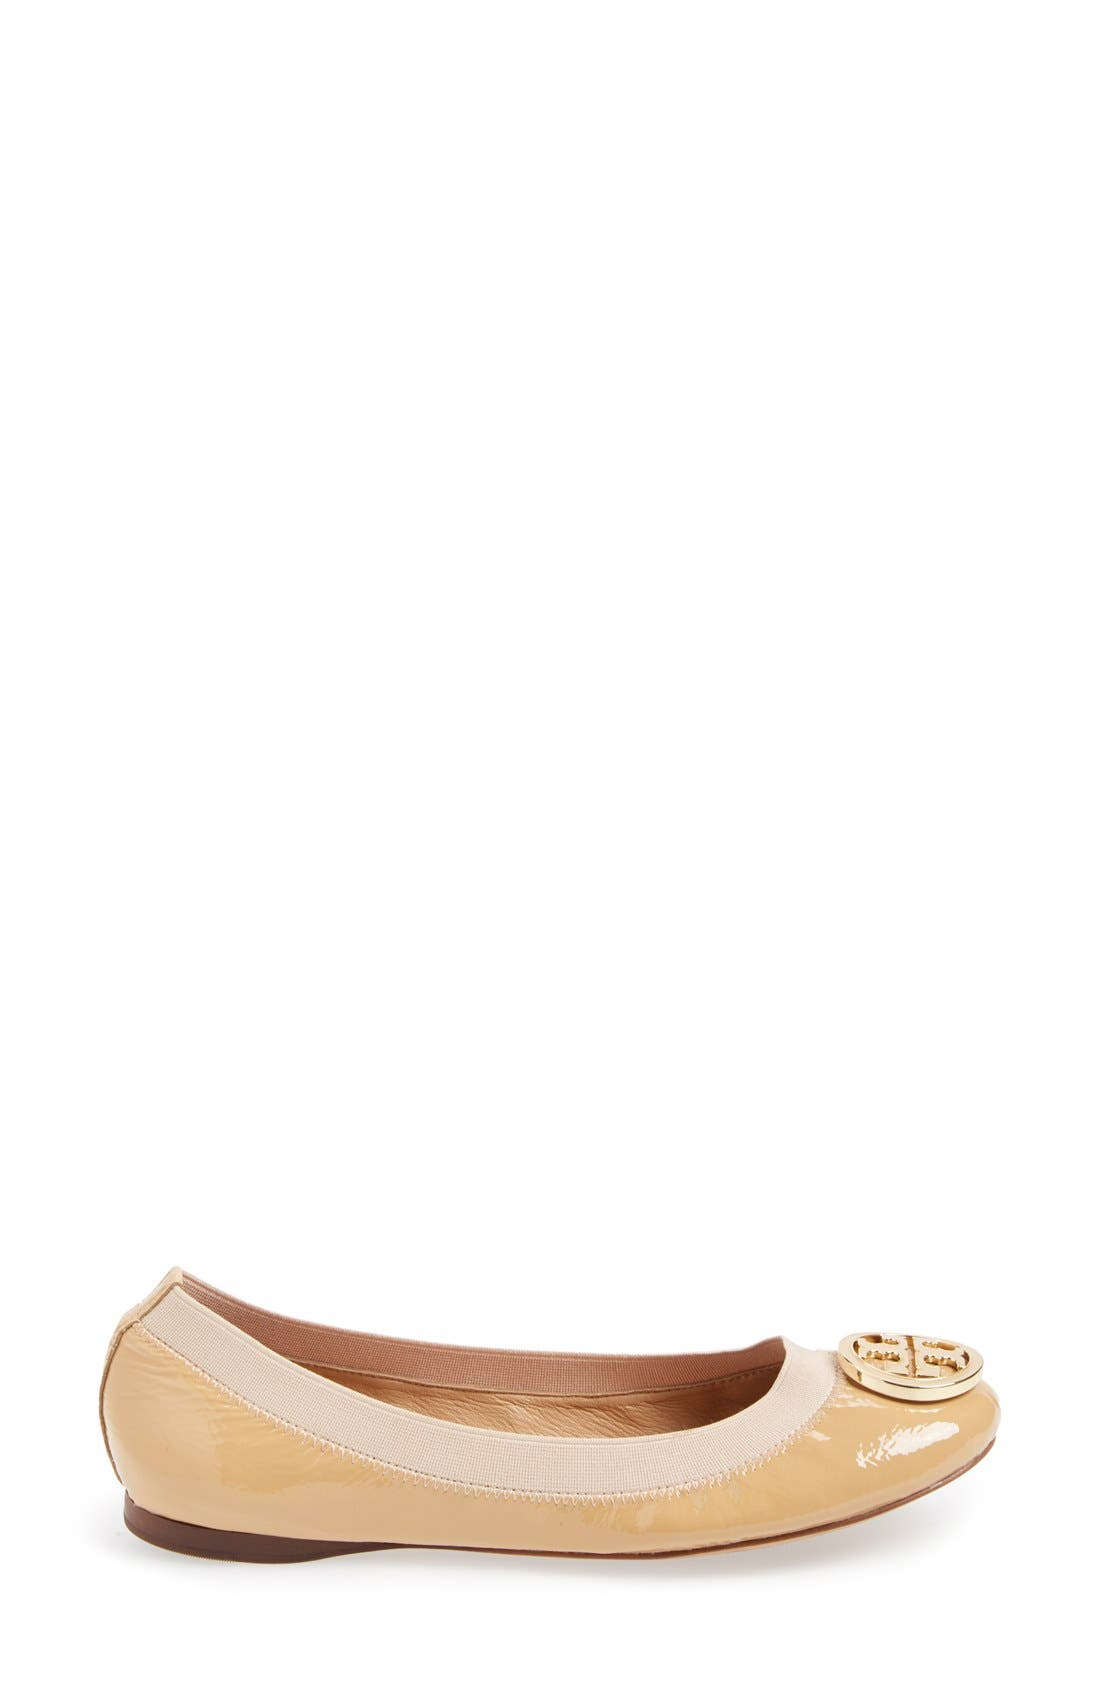 Alternate Image 4  - Tory Burch 'Caroline' Ballerina Flat (Women)